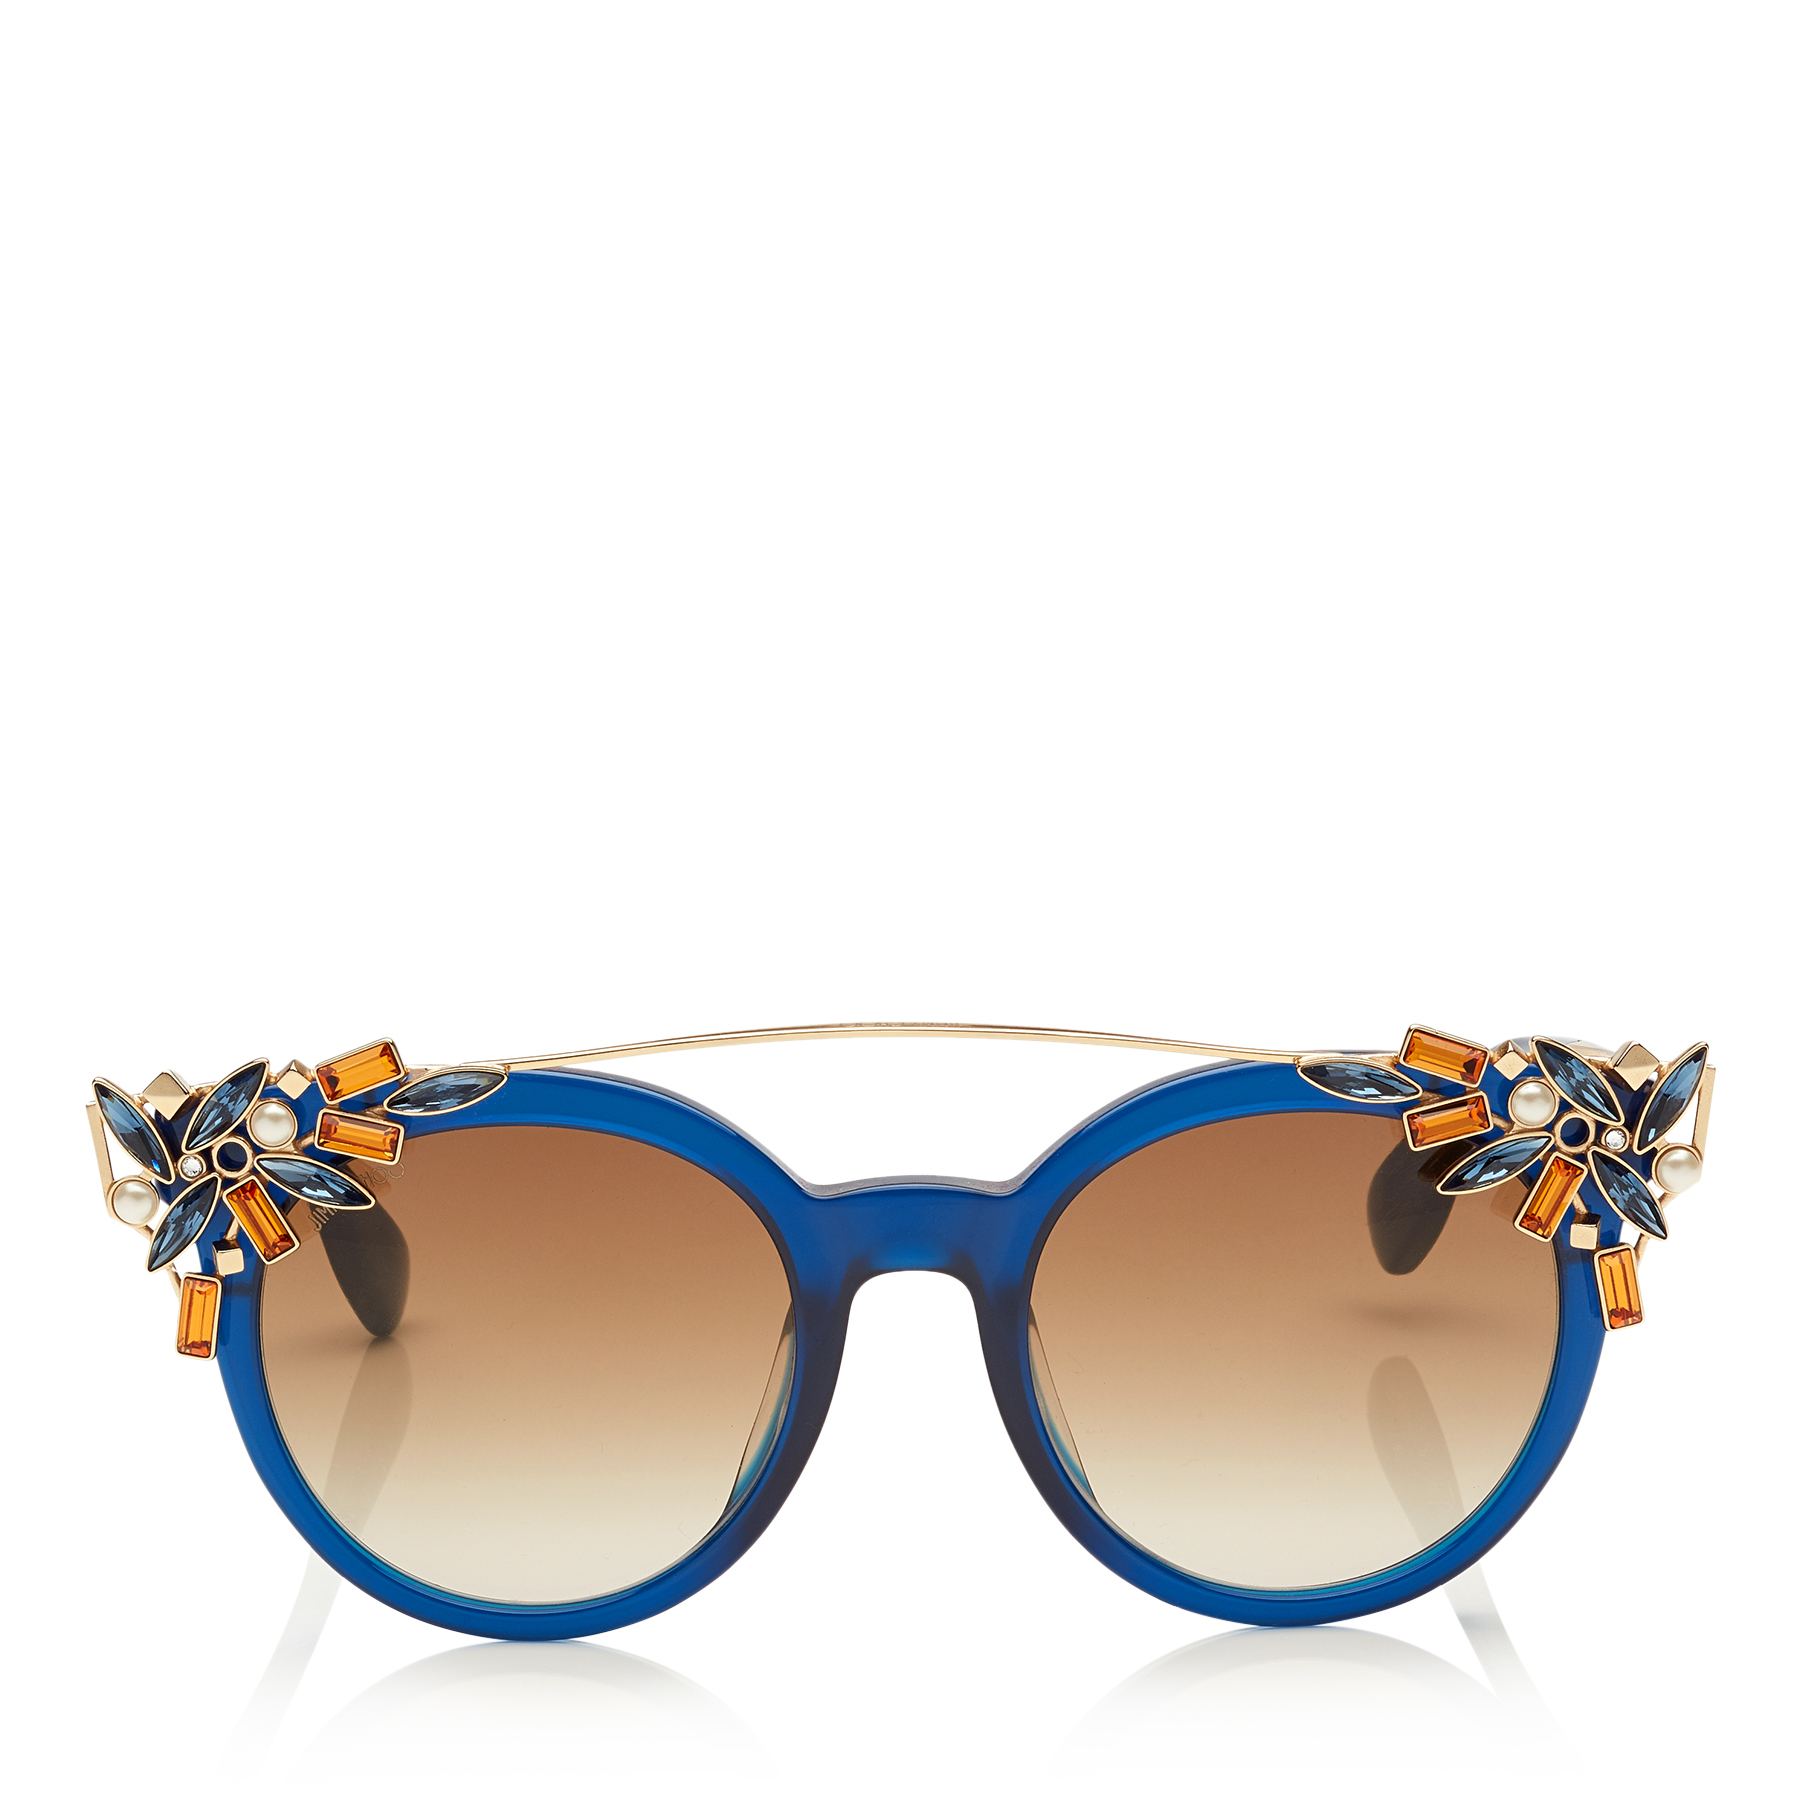 VIVY Blue and Gold Round Framed Sunglasses with Detachable Jewel Clip On